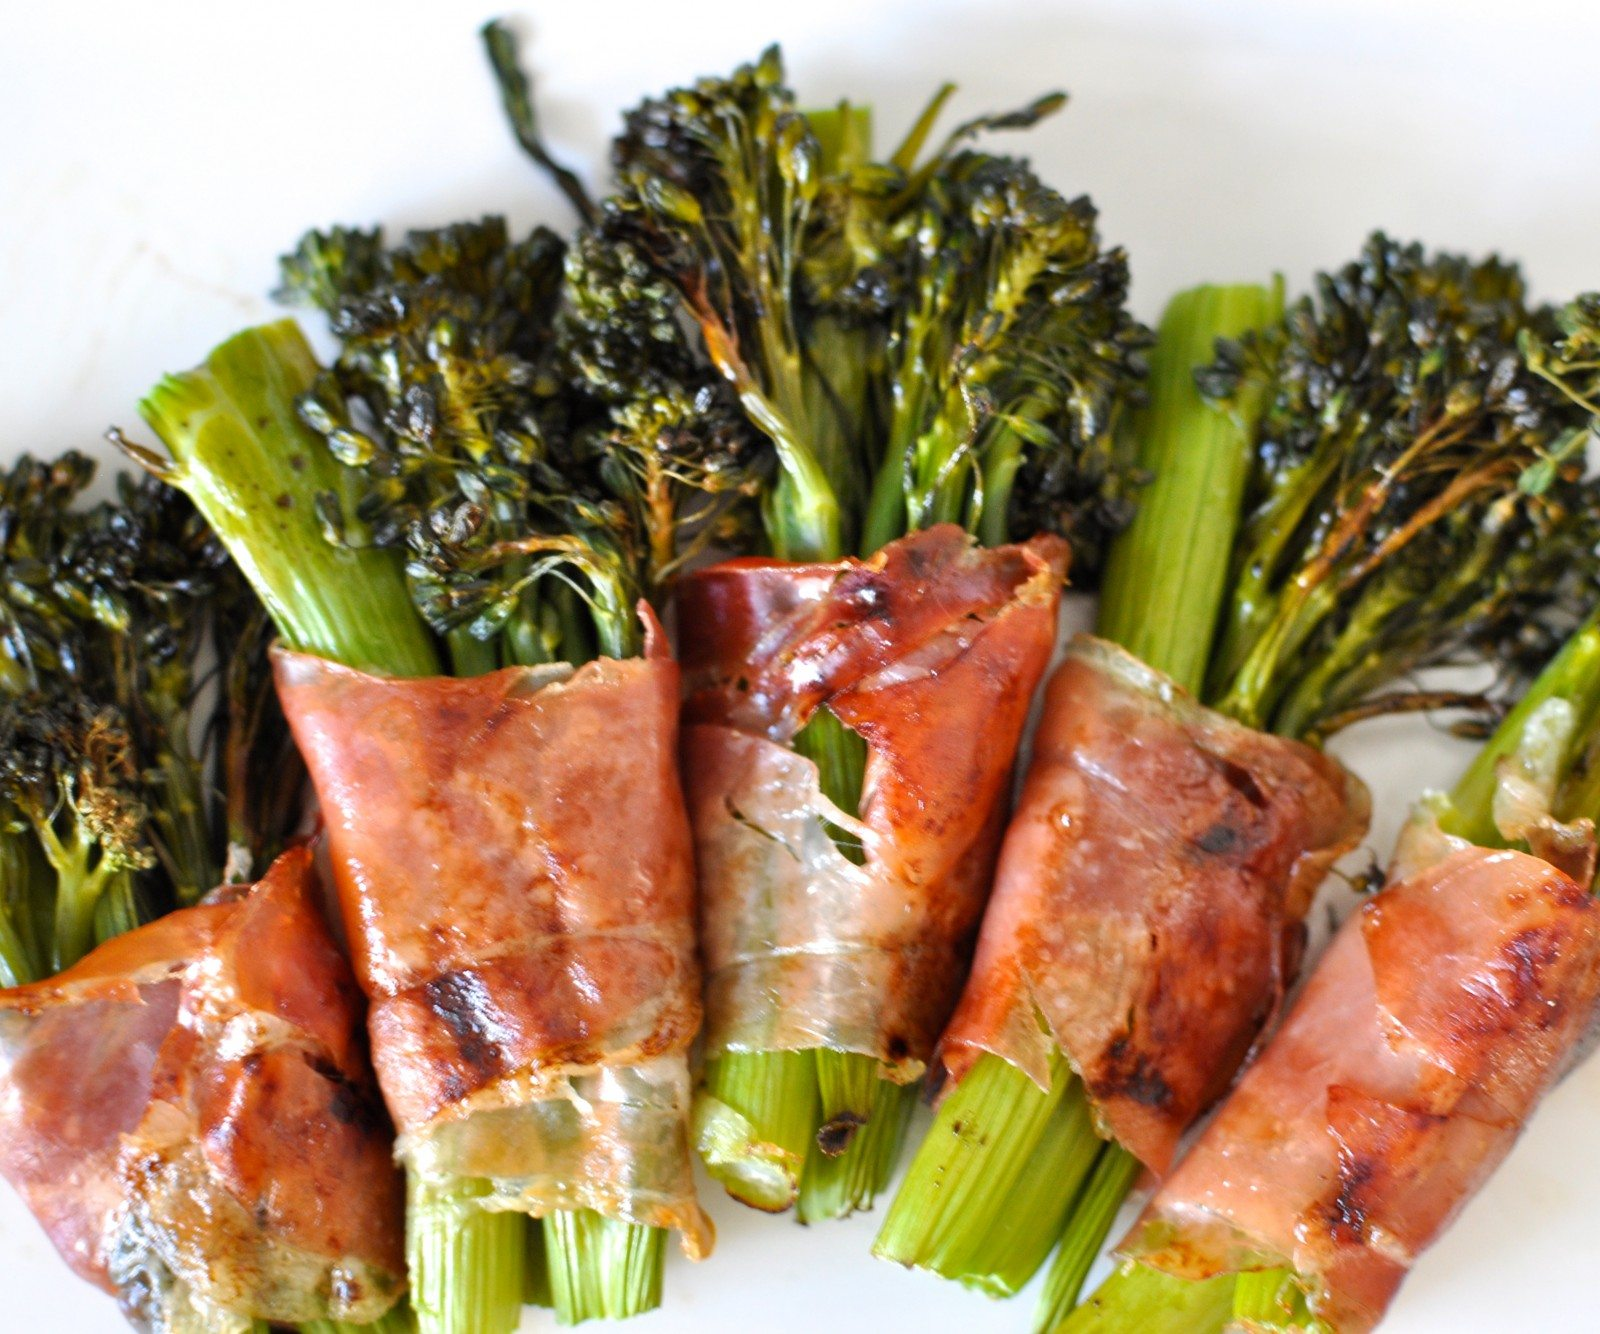 Roast broccolini &amp; prosciutto bundles